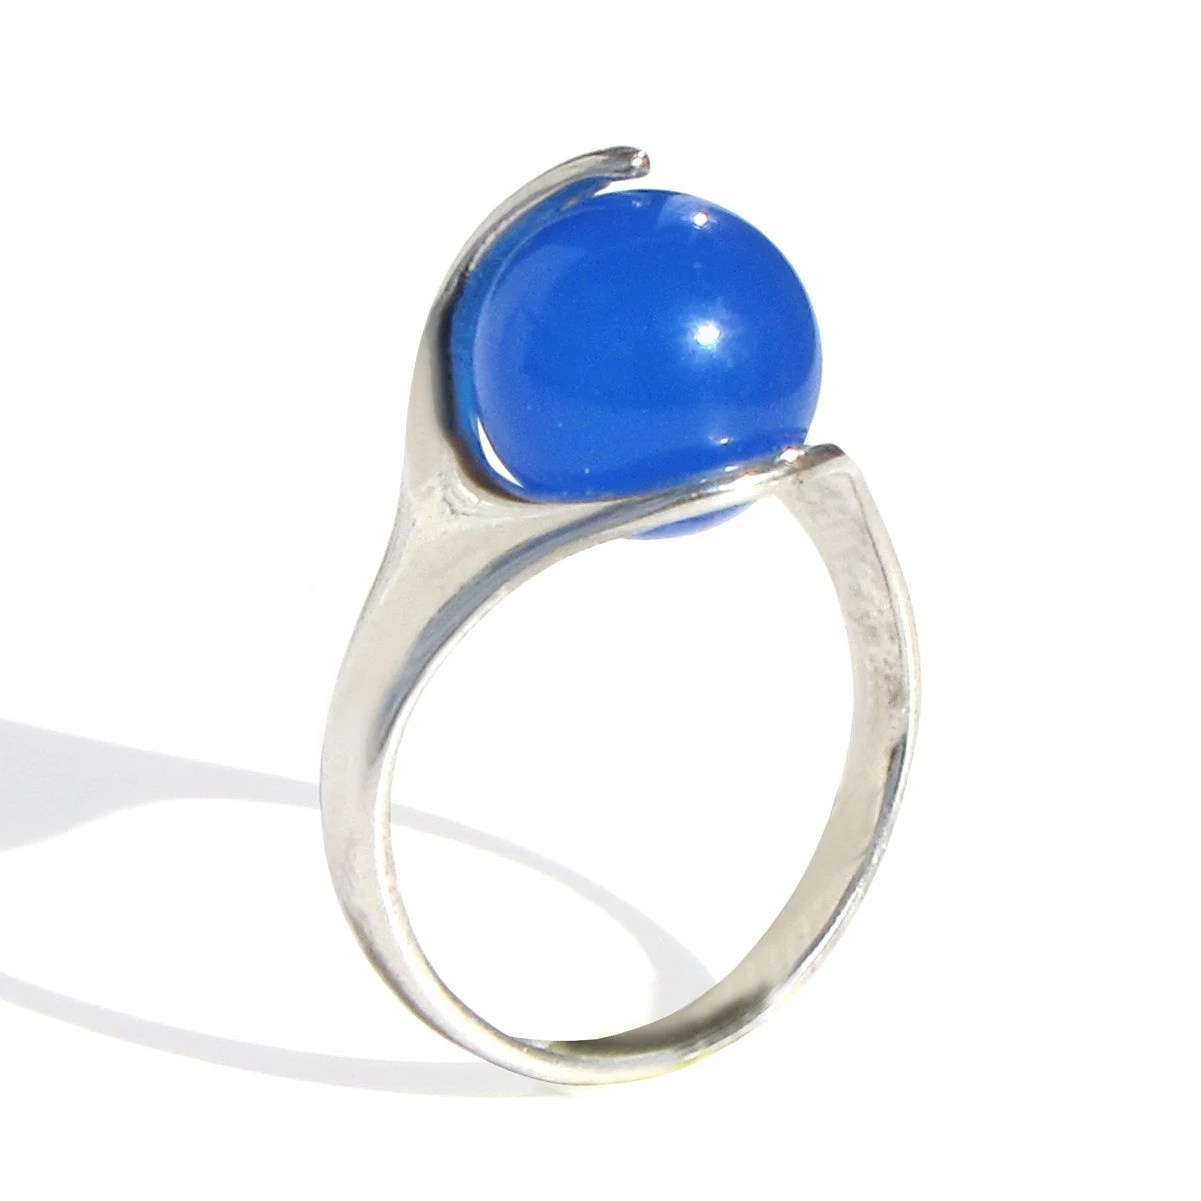 RA Egyptian Agate Ring Sterling Silver Blue Agate or Green Agate Custom Ring